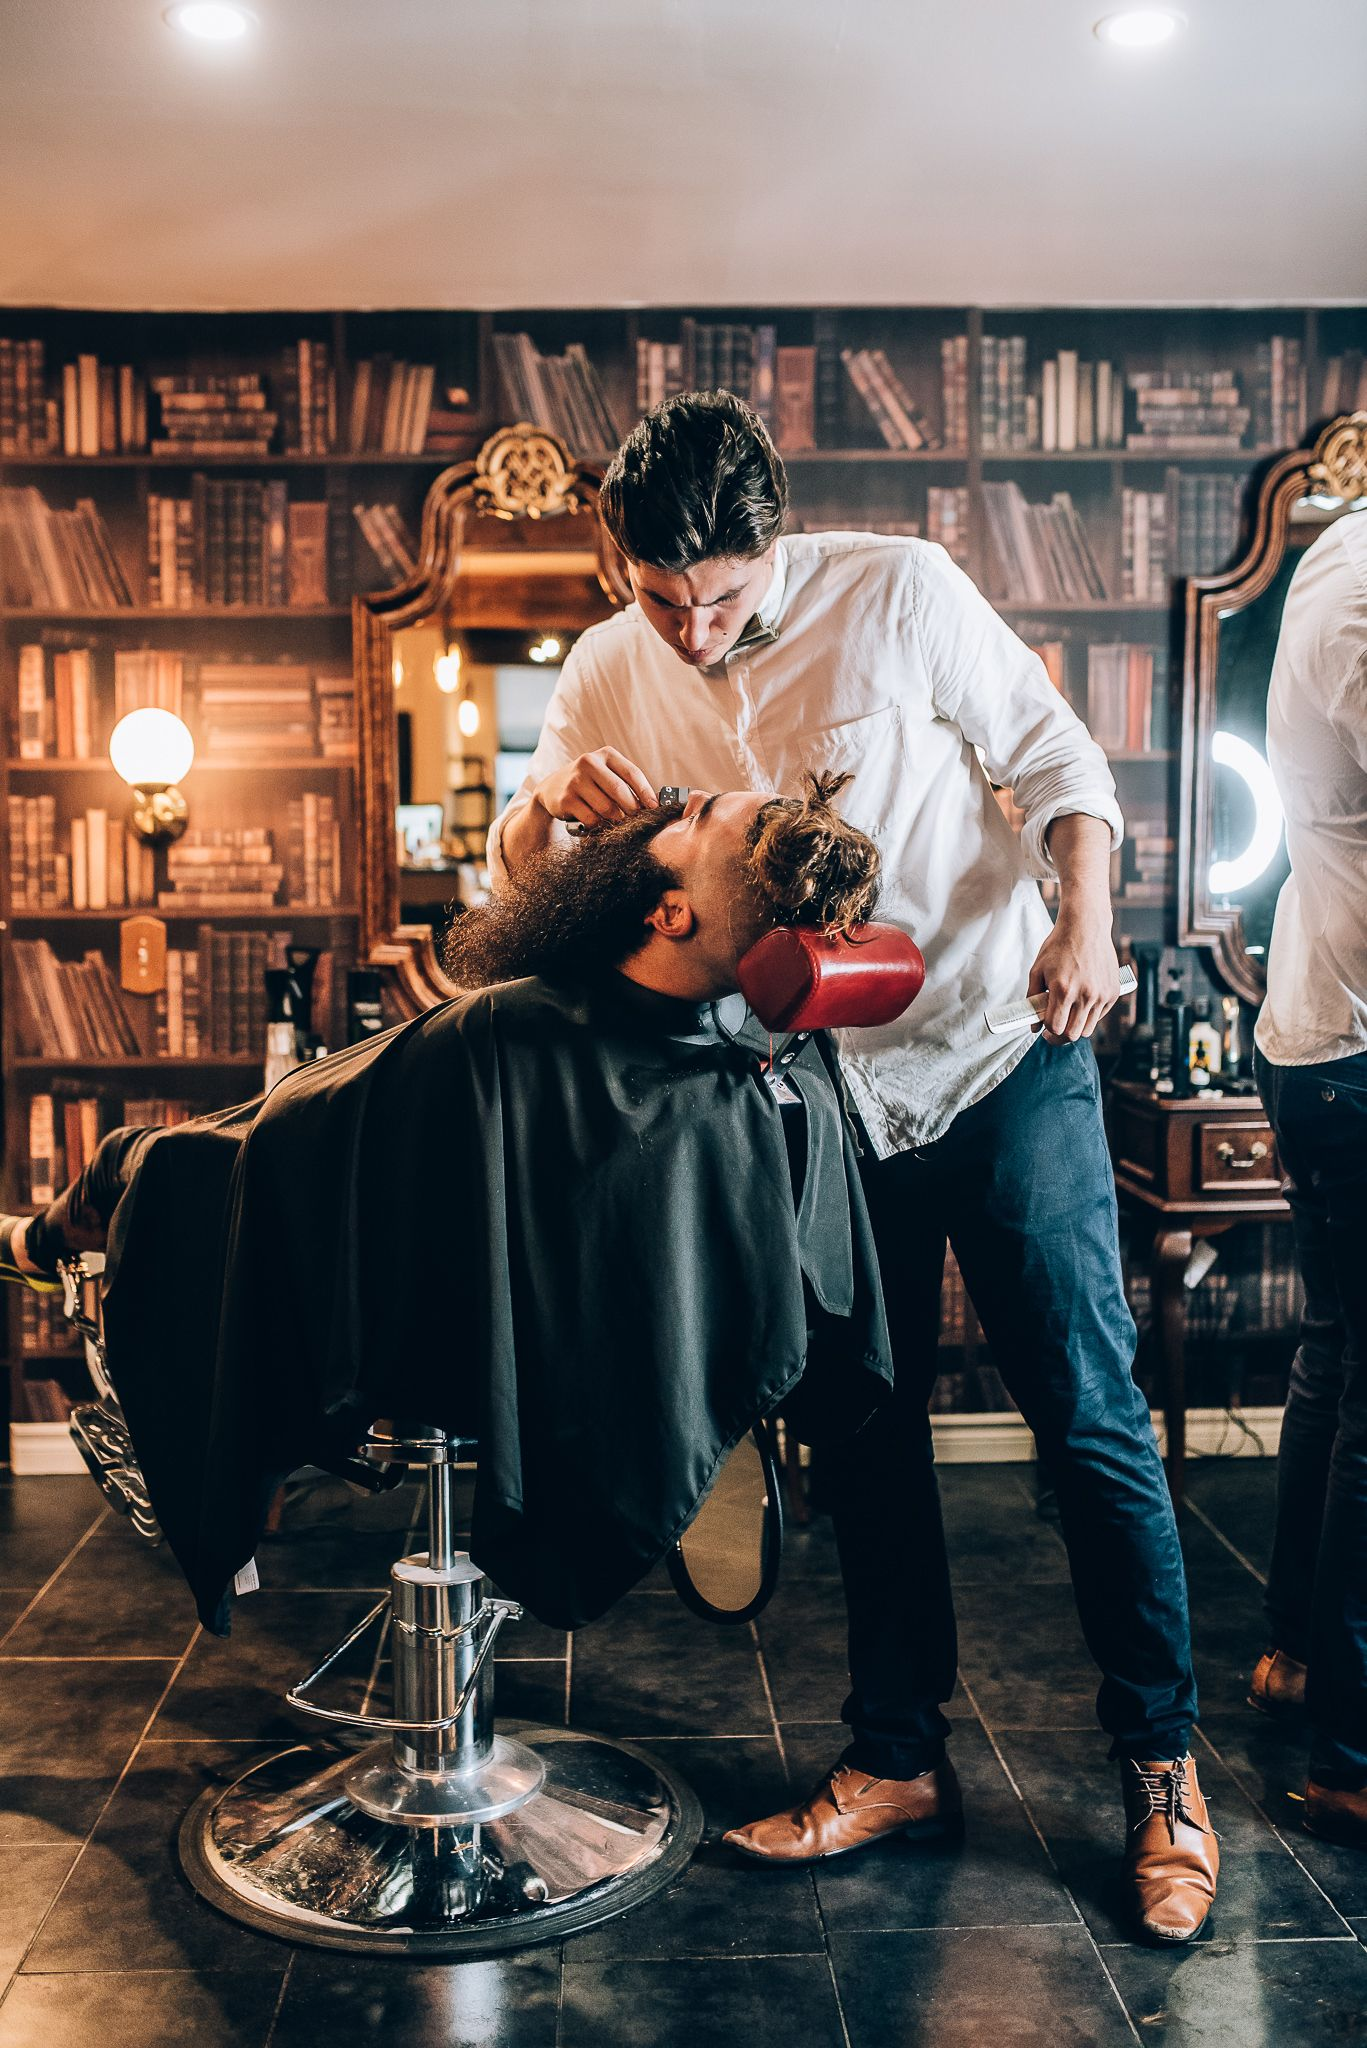 Beardlington Is The Best Rated Barbershop Based In Montreal Book Your Slot Via Beardlington Com Rated 4 8 Out Of 5 Stars By Barber Shop Montreal Best